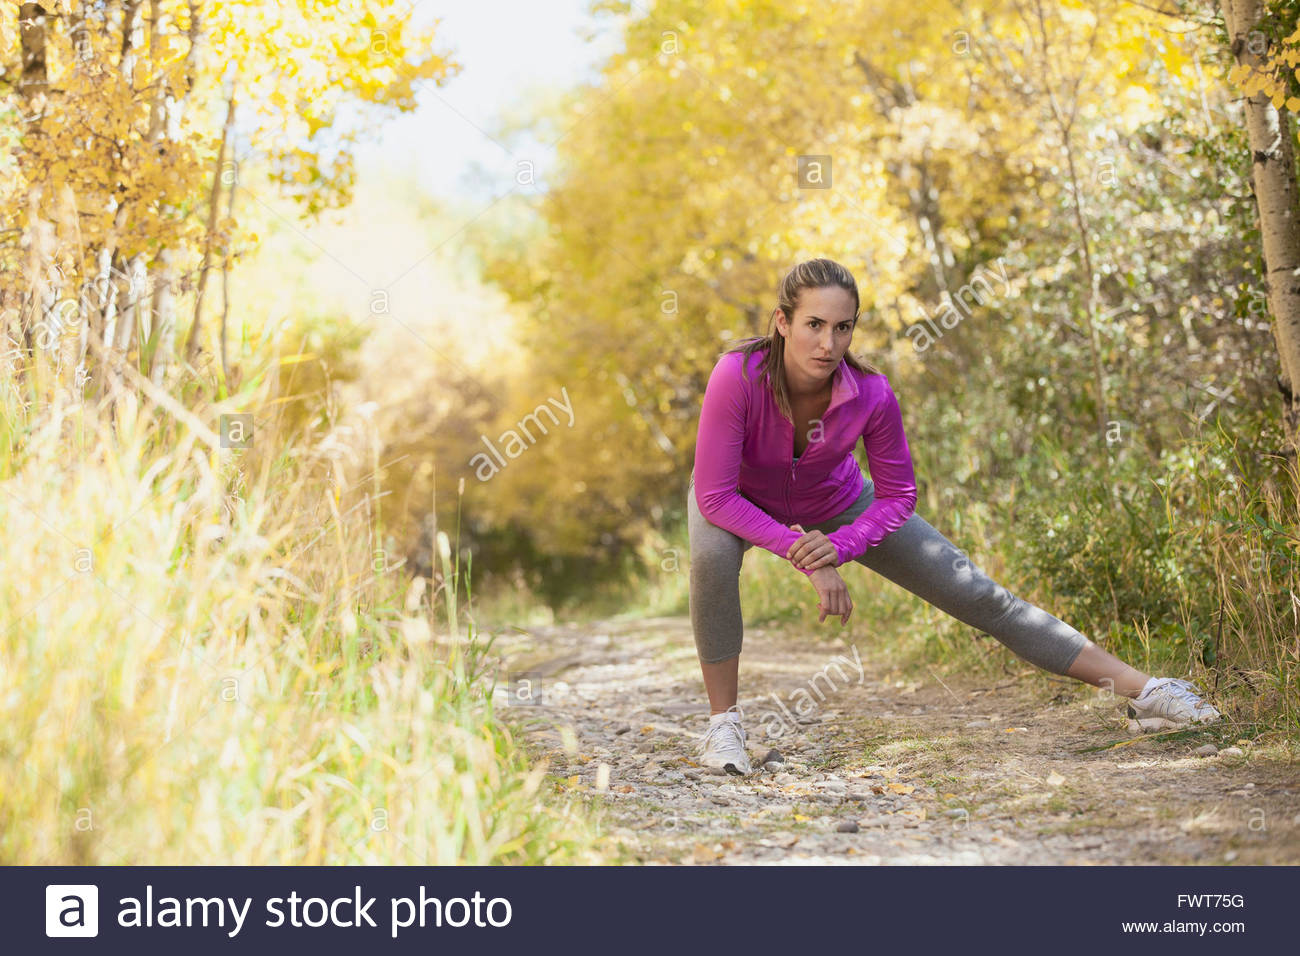 Woman stretching before outdoor run. - Stock Image